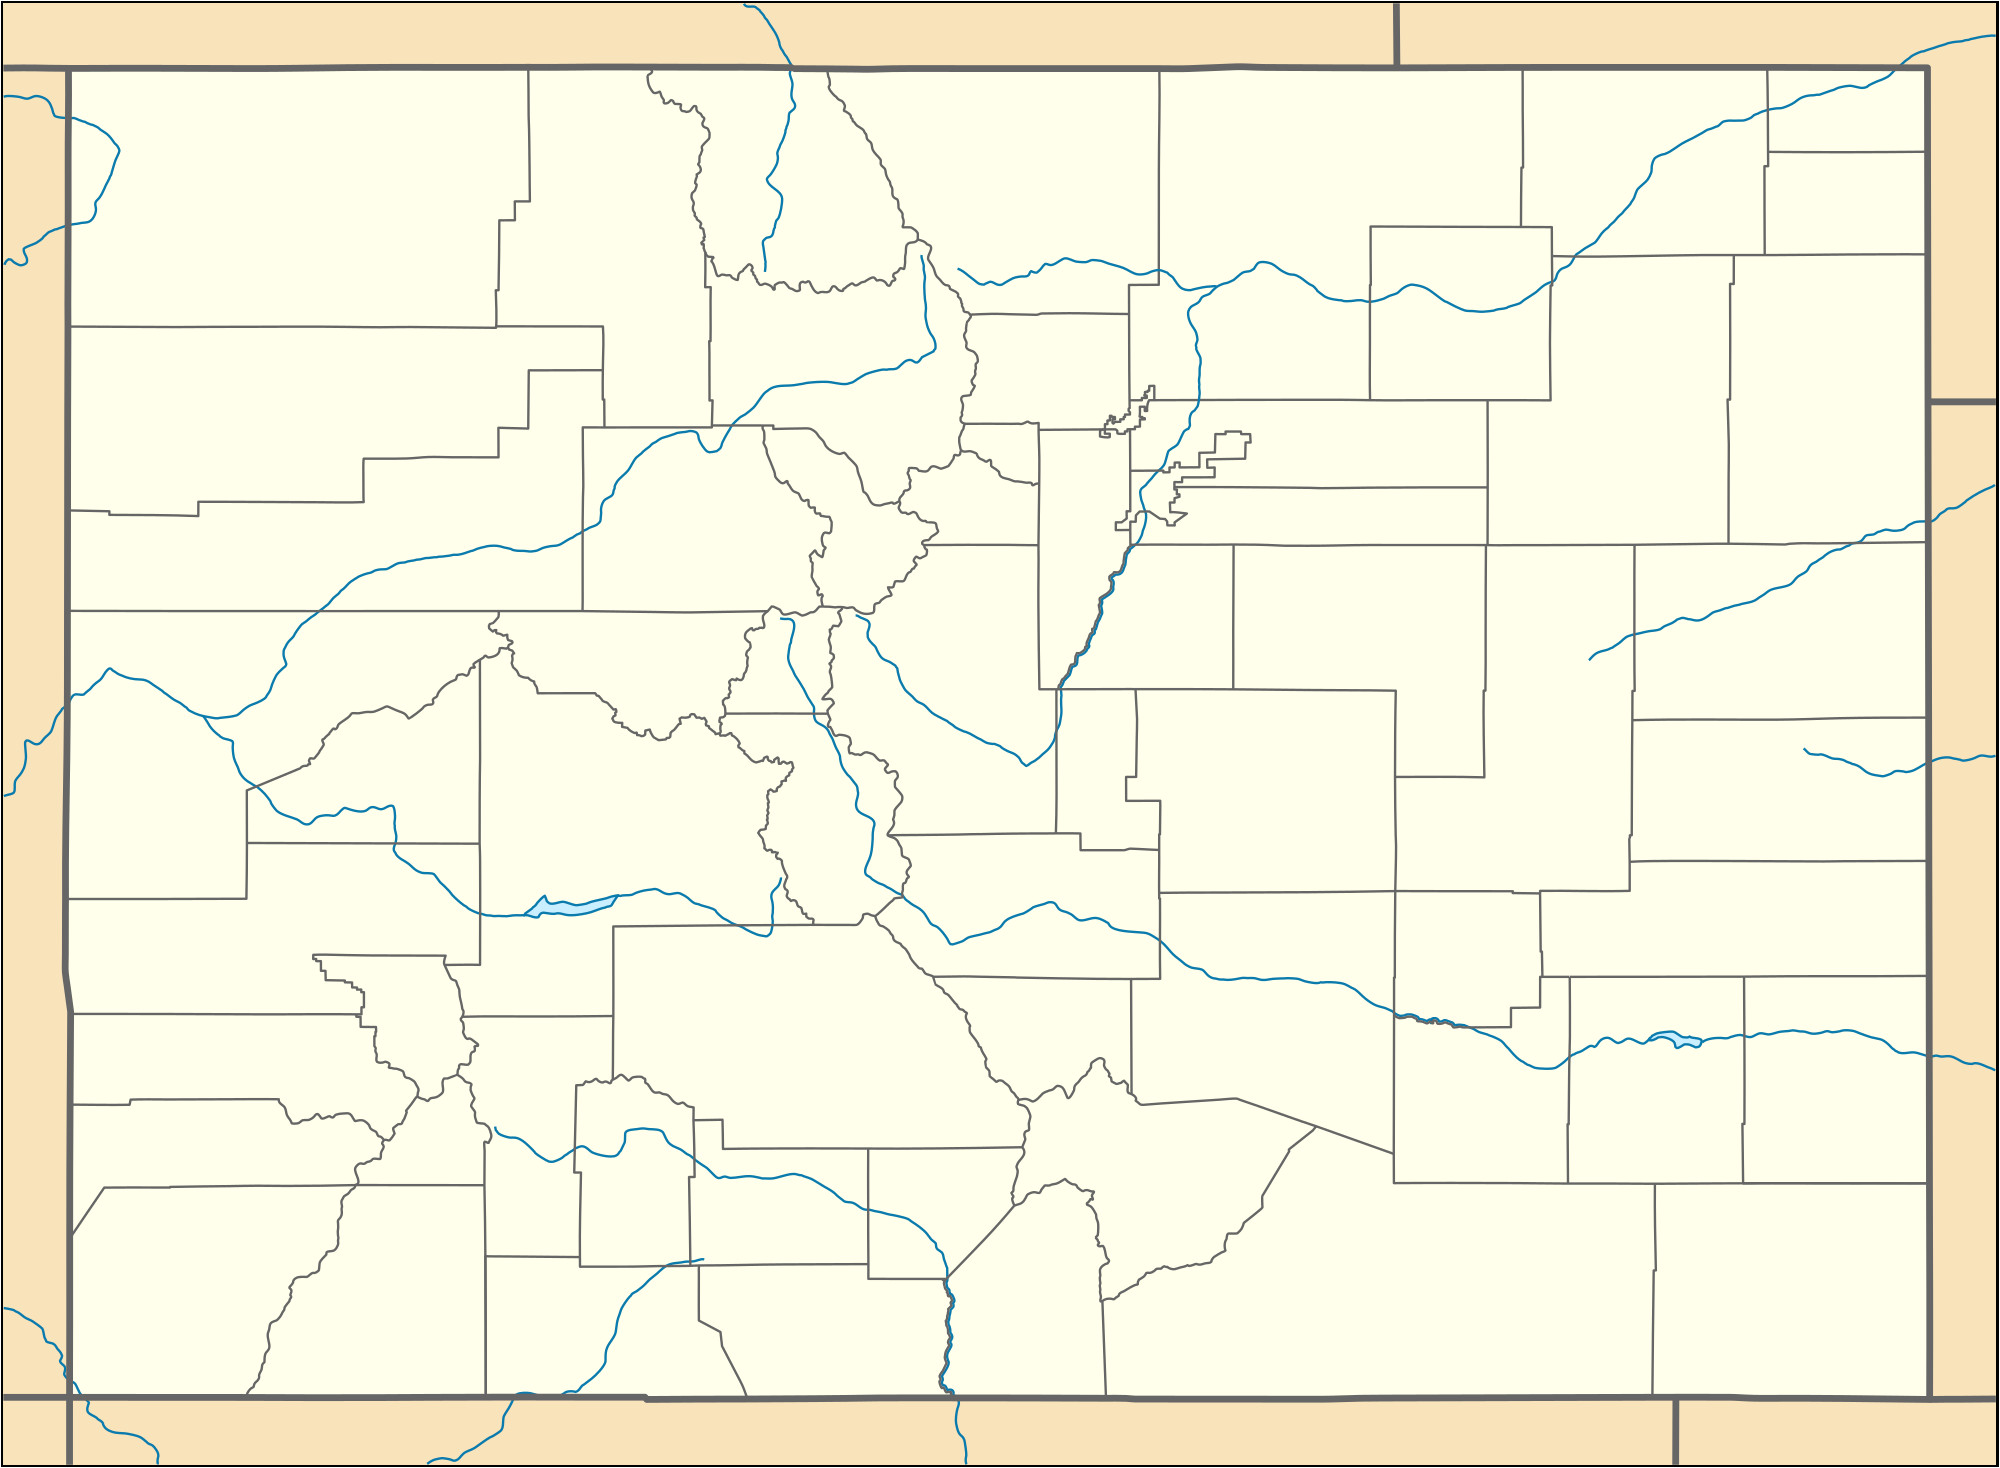 lowry air force base is located in colorado